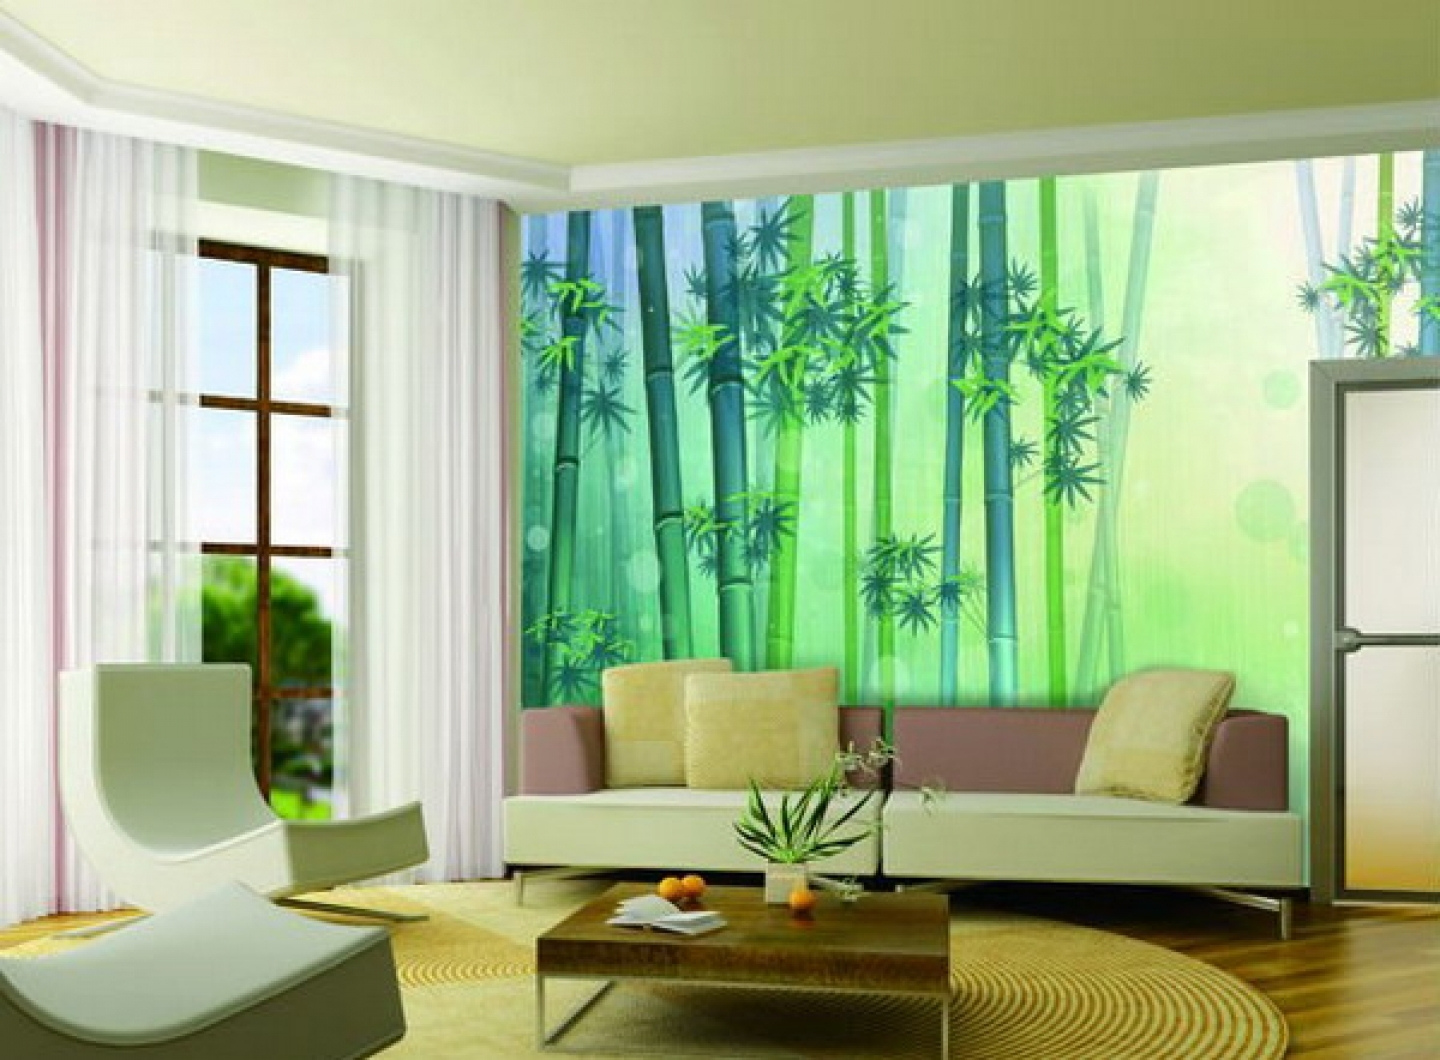 New Home Decorative ideas: Give Your House a New Look | Important ...